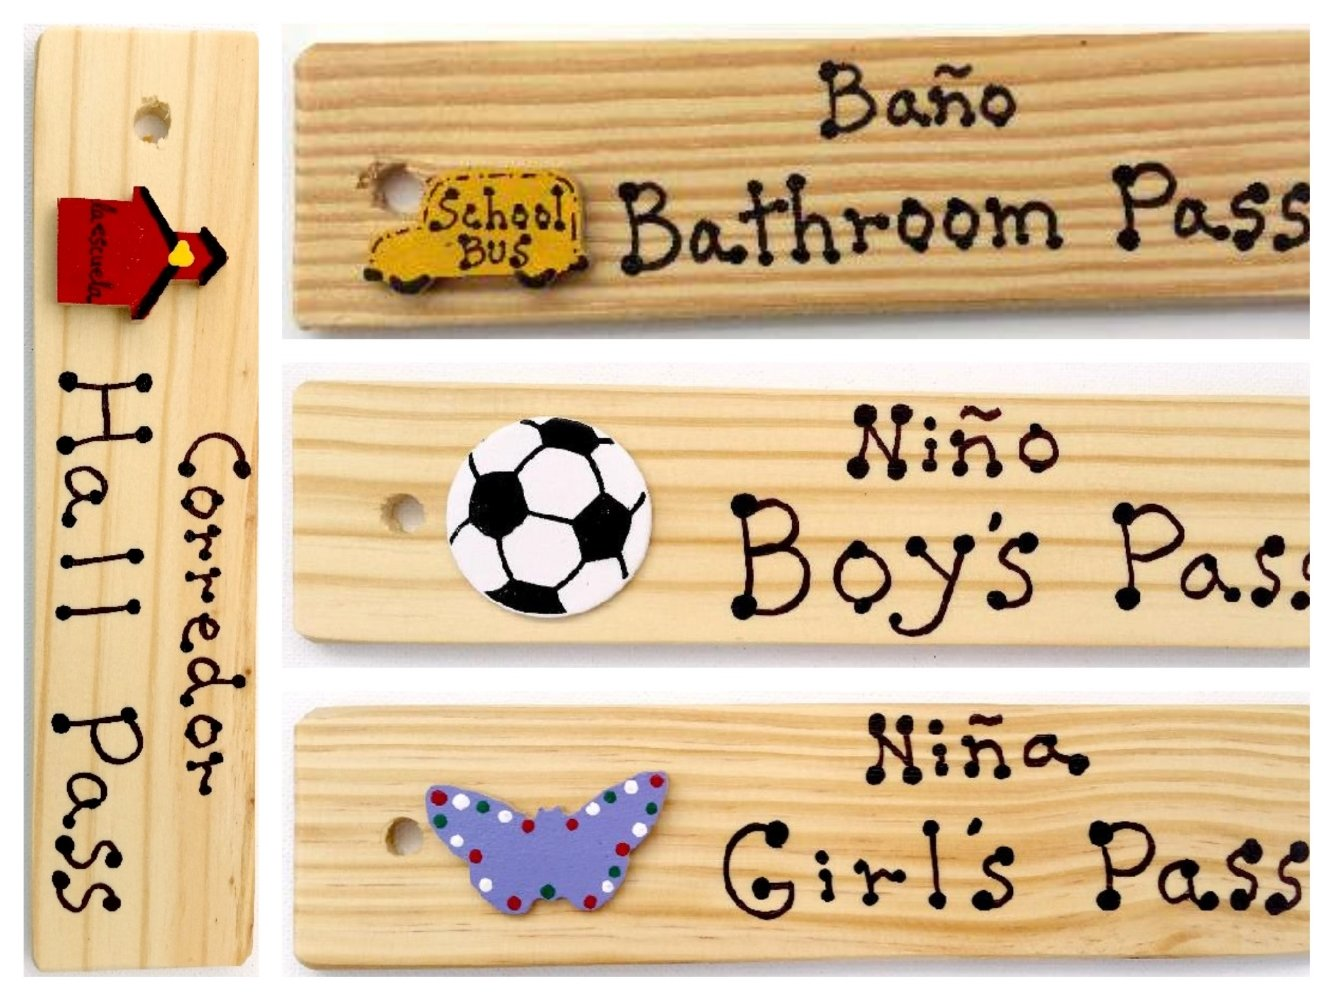 Bilingual Passes - AA-911 ESSET4 Set of 4(Hall, Bathroom, Boy's & Girl's) Made in USA - 8''x2'' Wooden Pass w/Hang Loop. by AppleABC Teachers Gifts